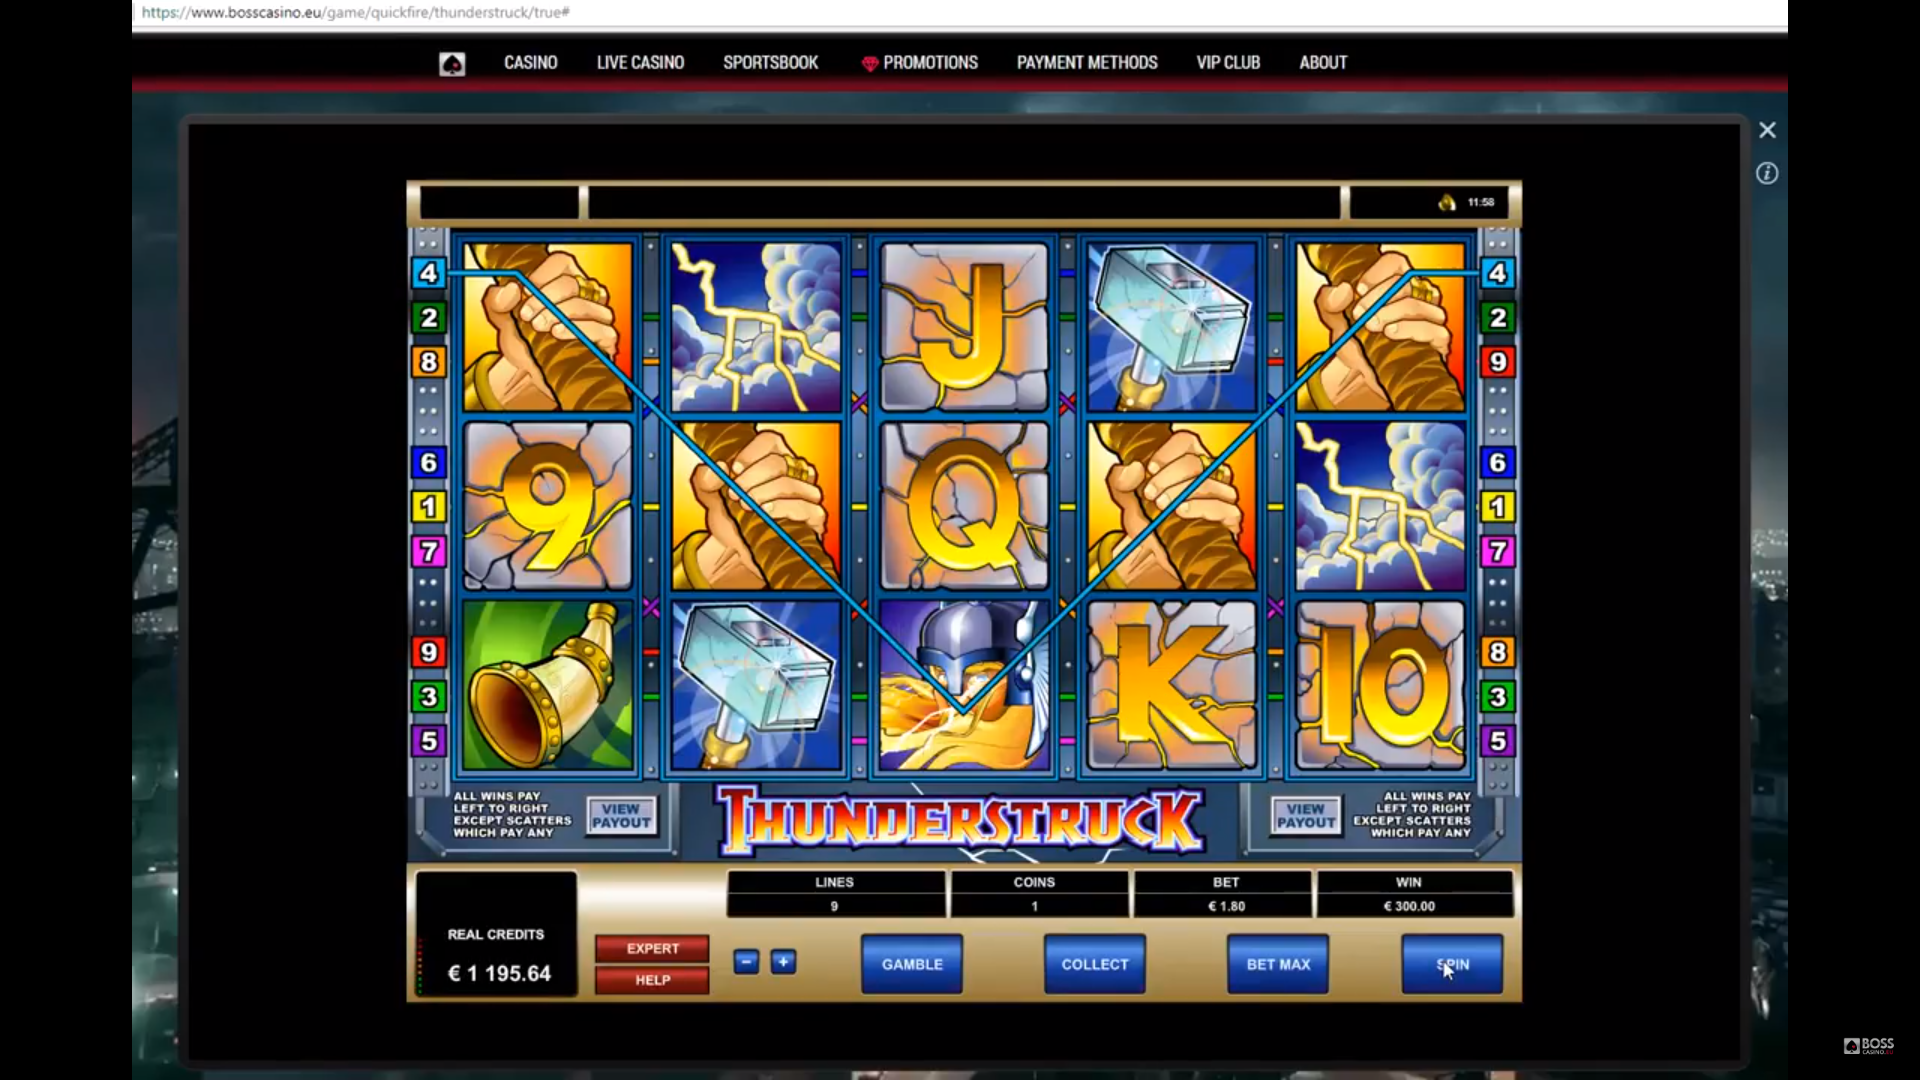 Thunderstruck online slot by Microgaming. Mega big win